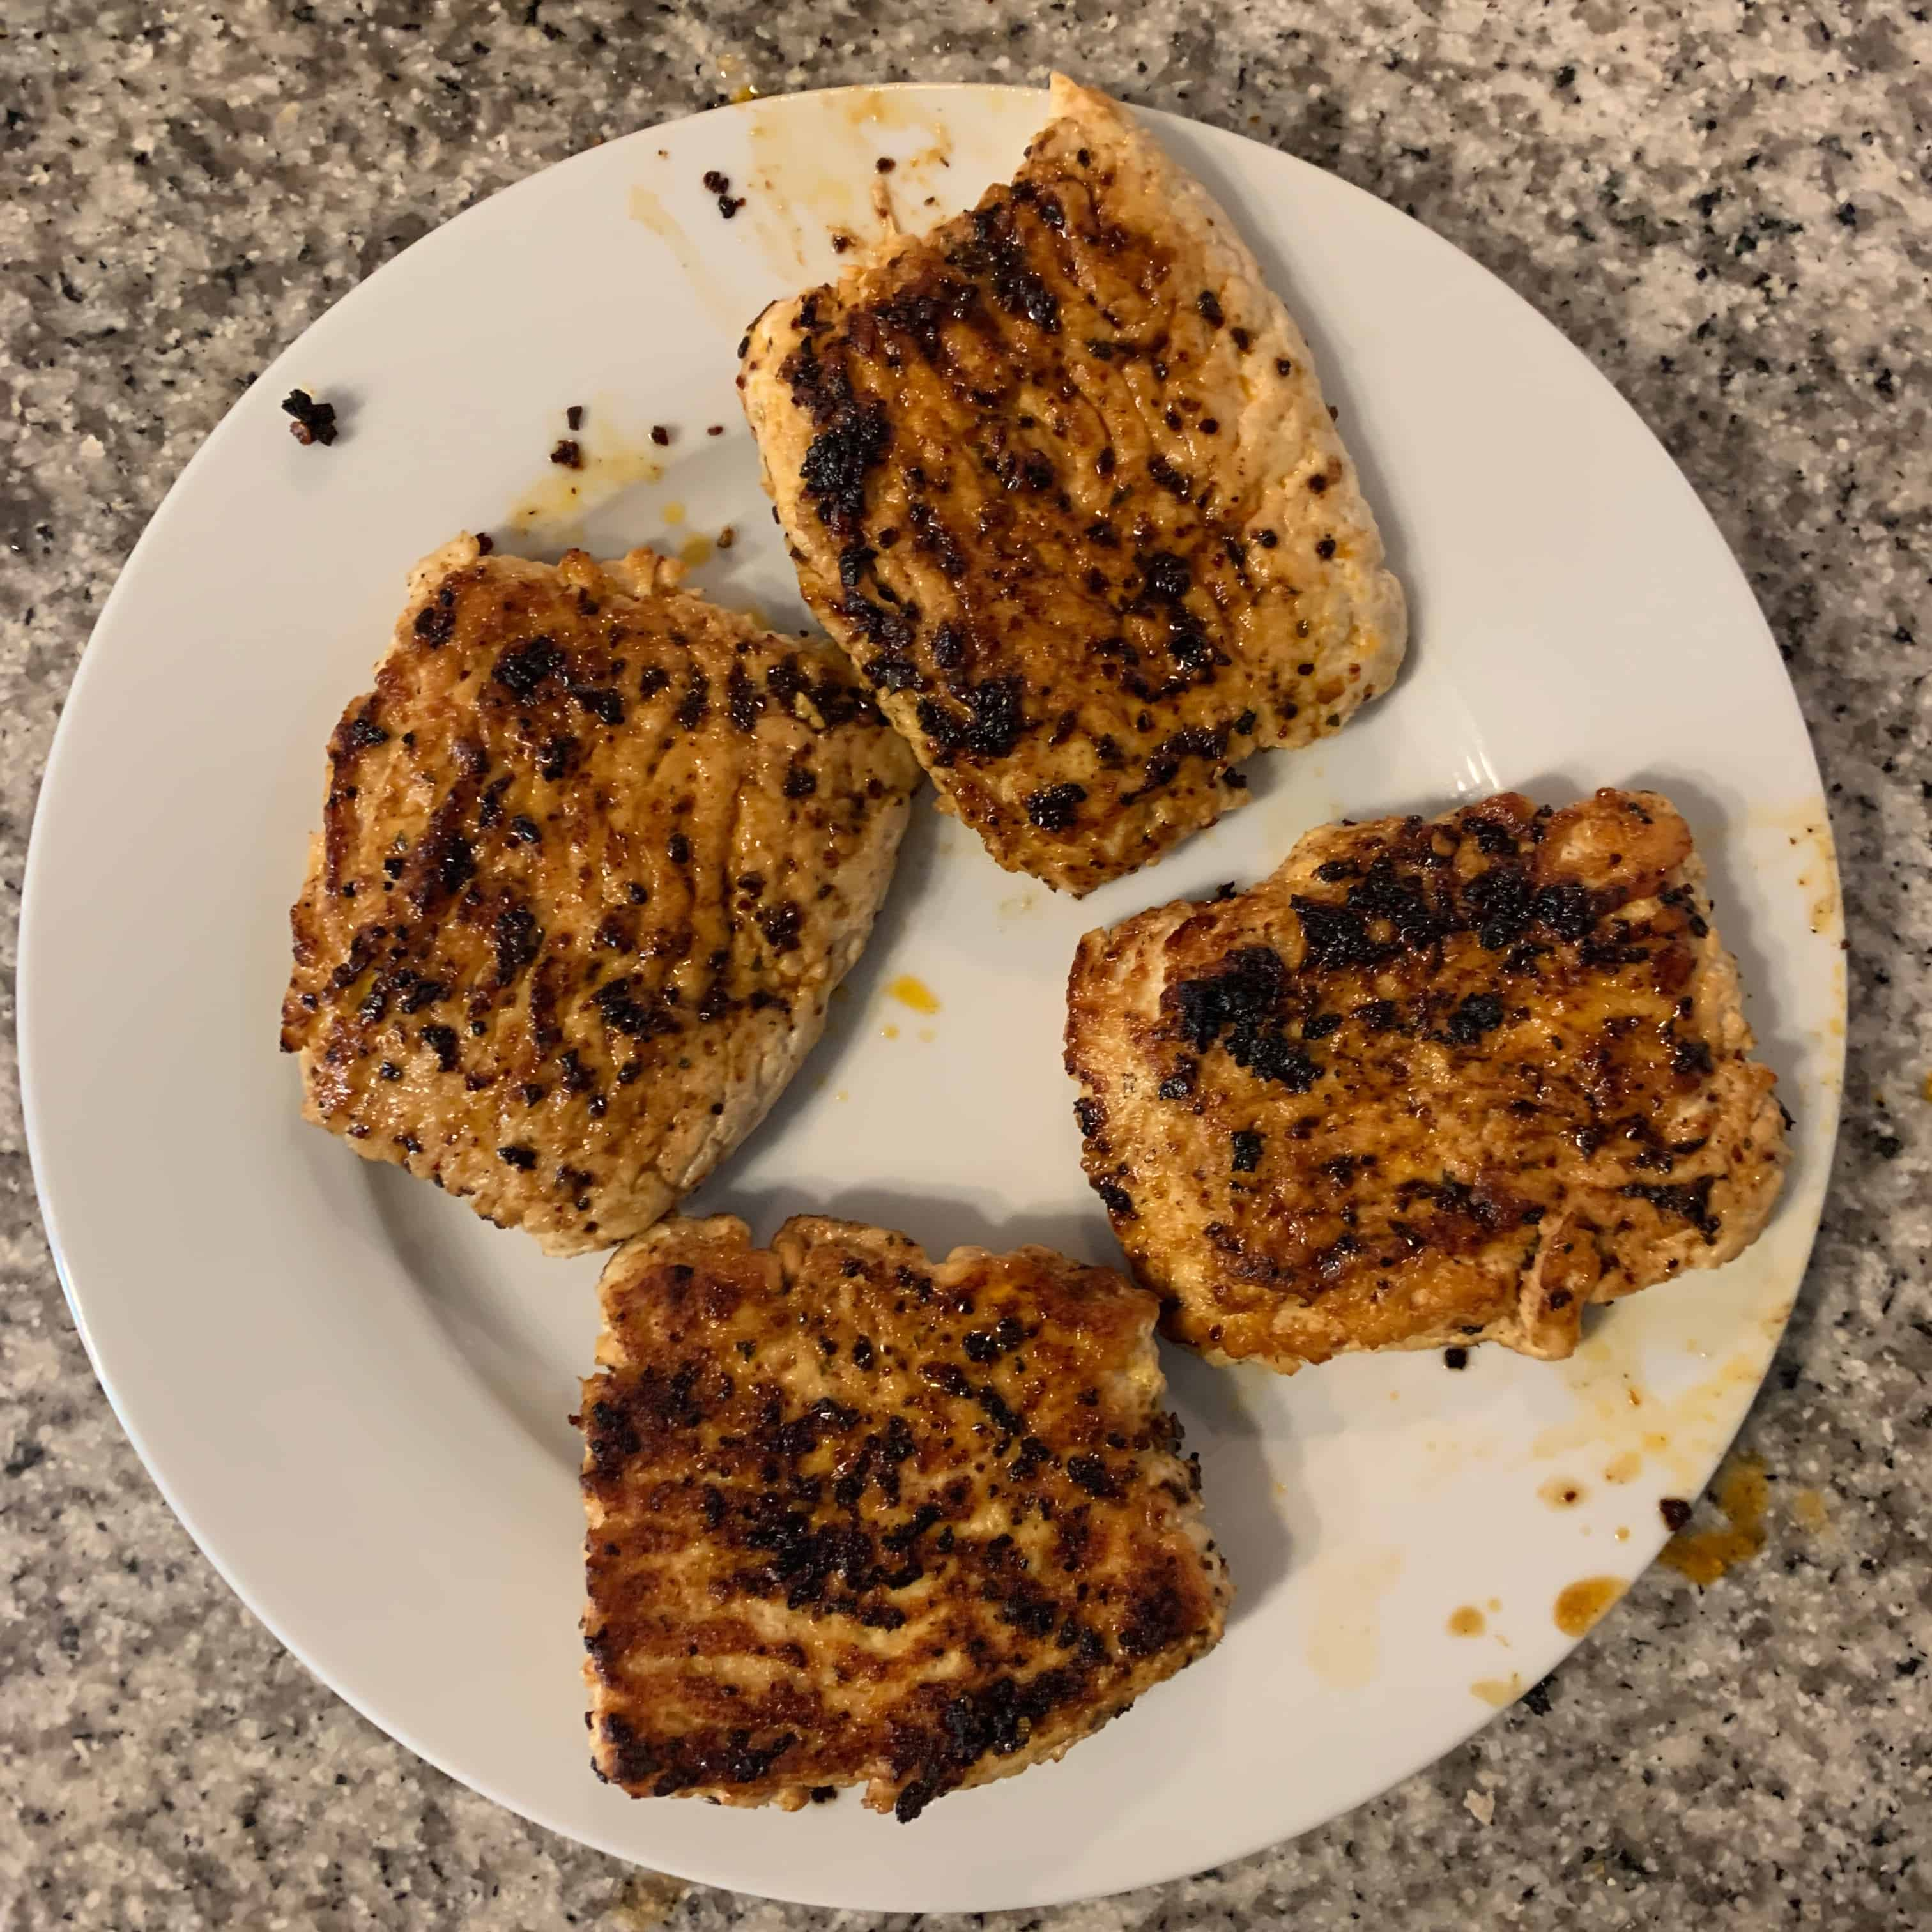 cooked chicken burgers on a plate